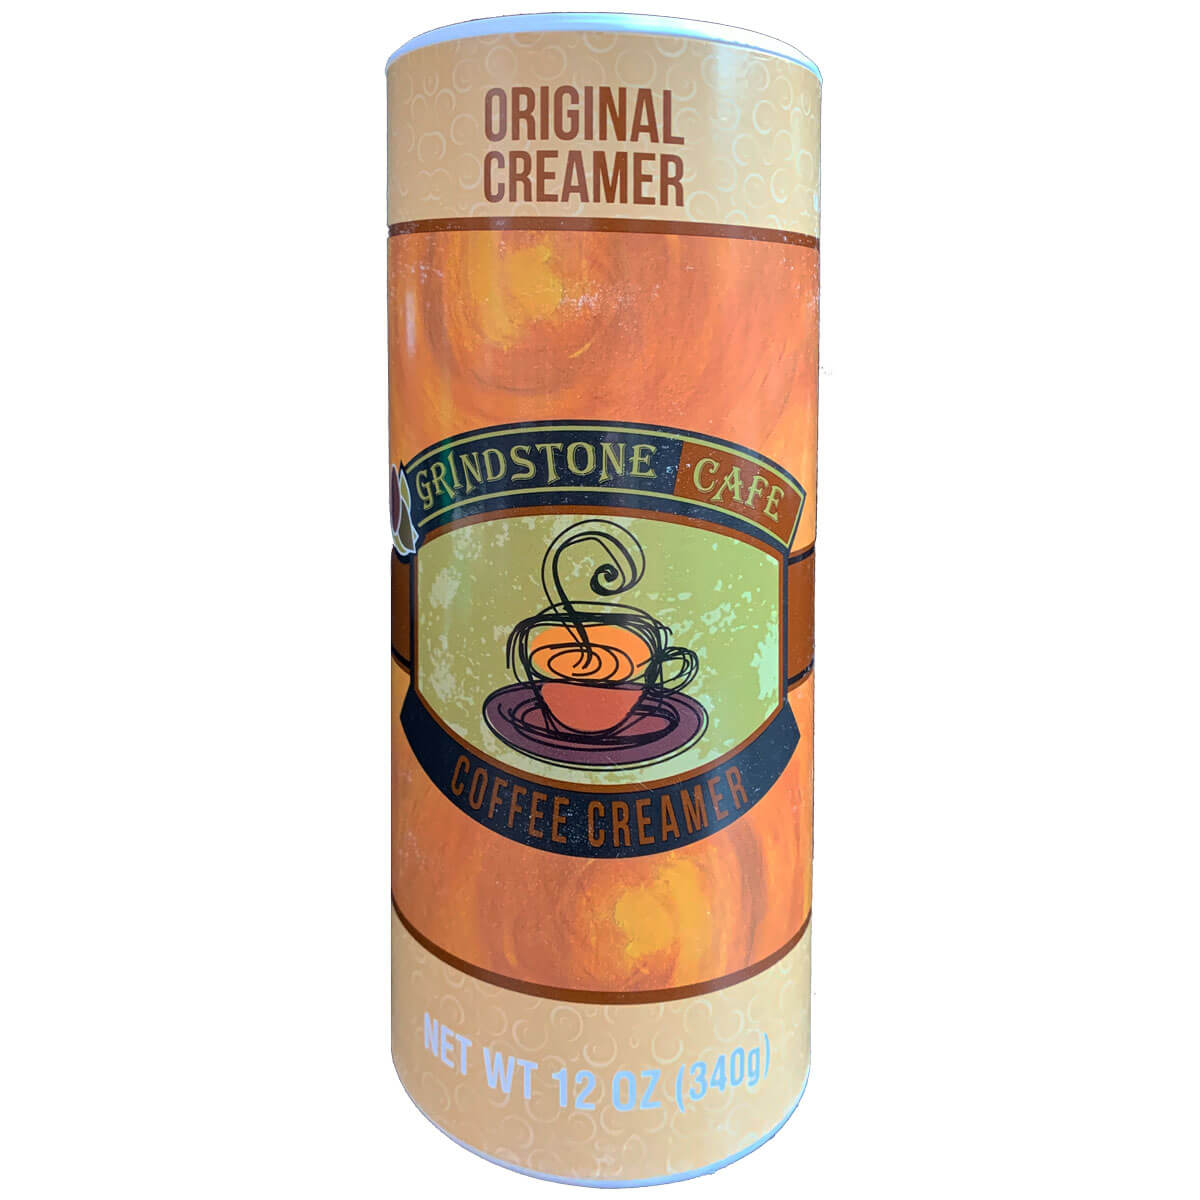 Grindstone Cream Canister 12 oz thumbnail